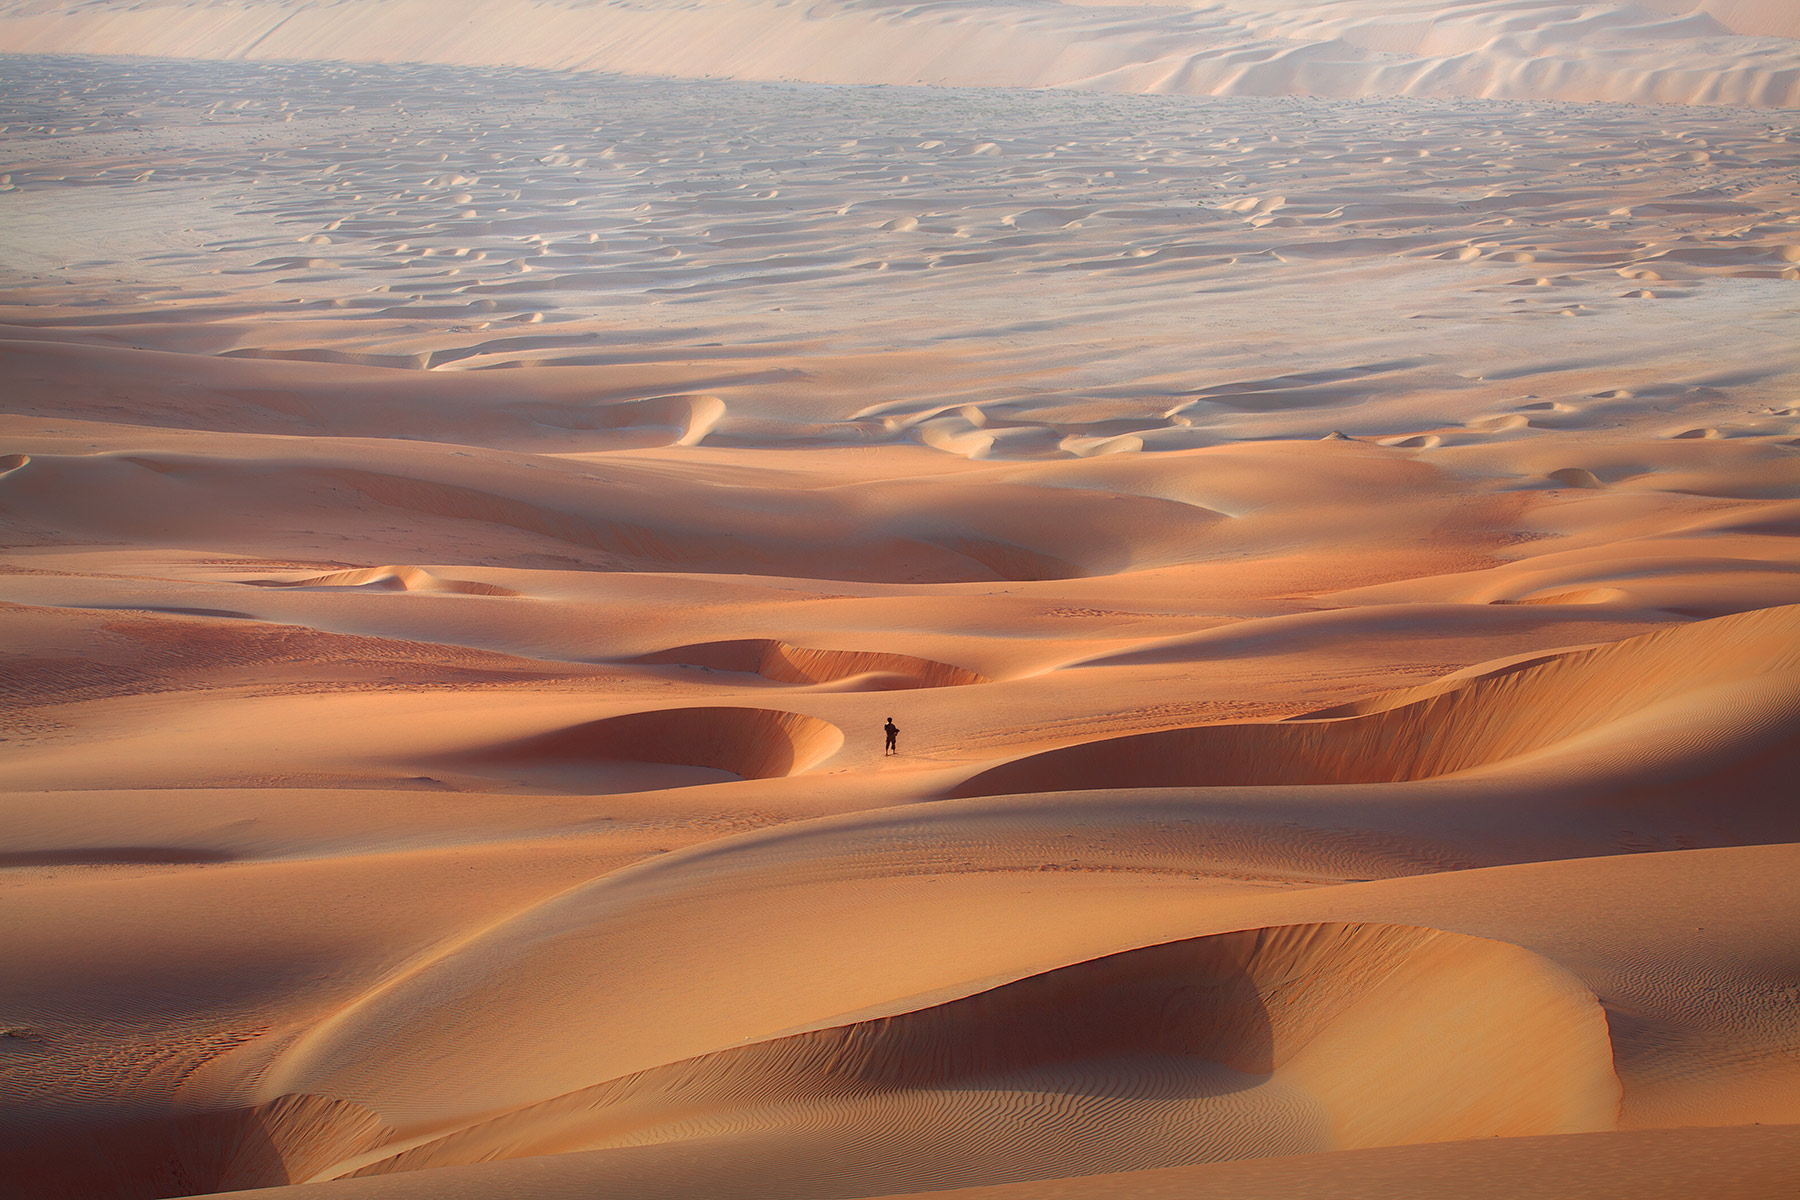 Empty Quarter, United Arab Emirates, photo